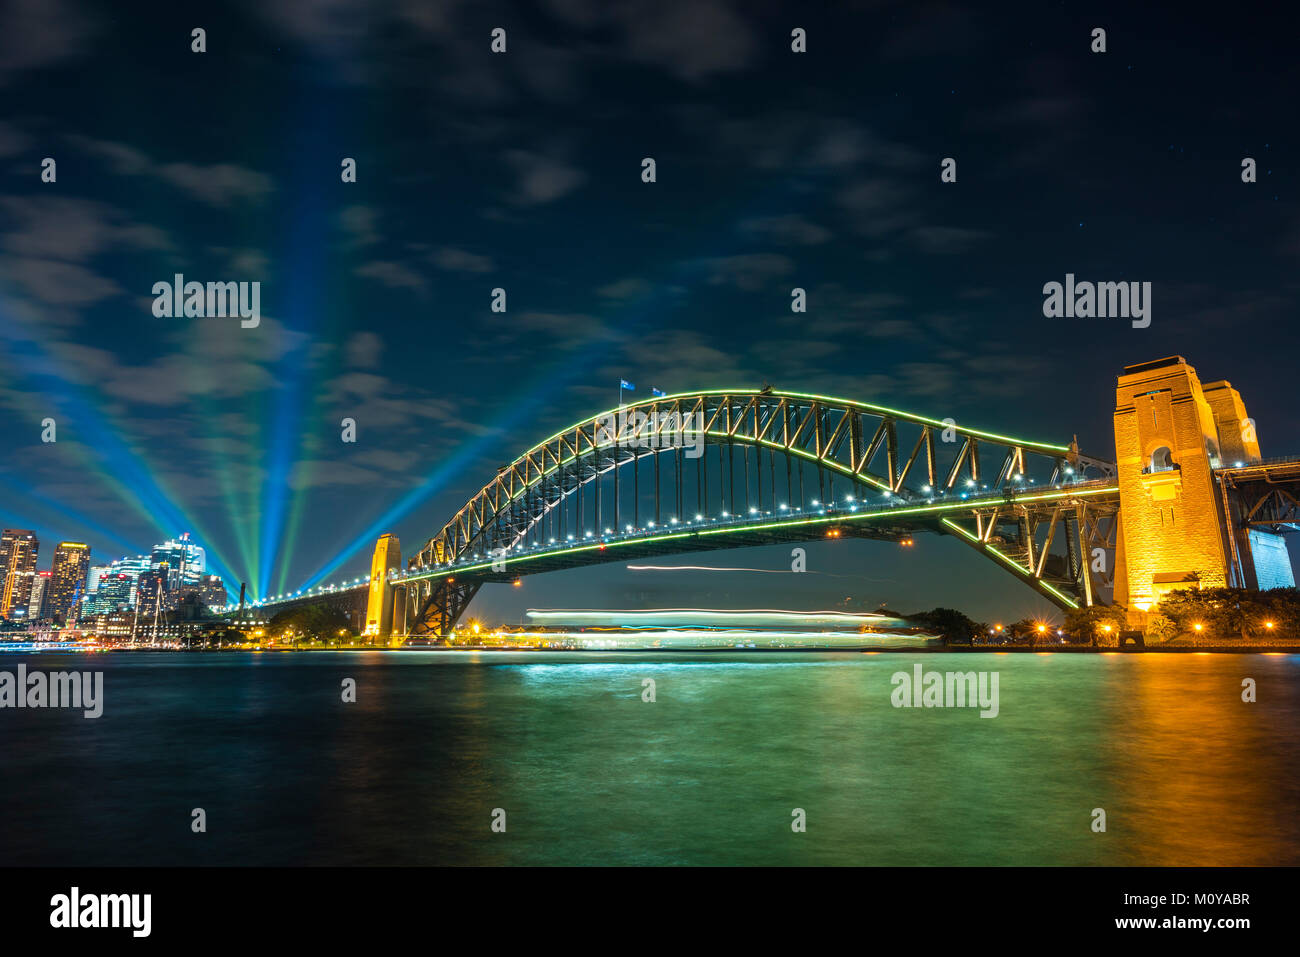 Sydney Harbour Bridge at night - Stock Image